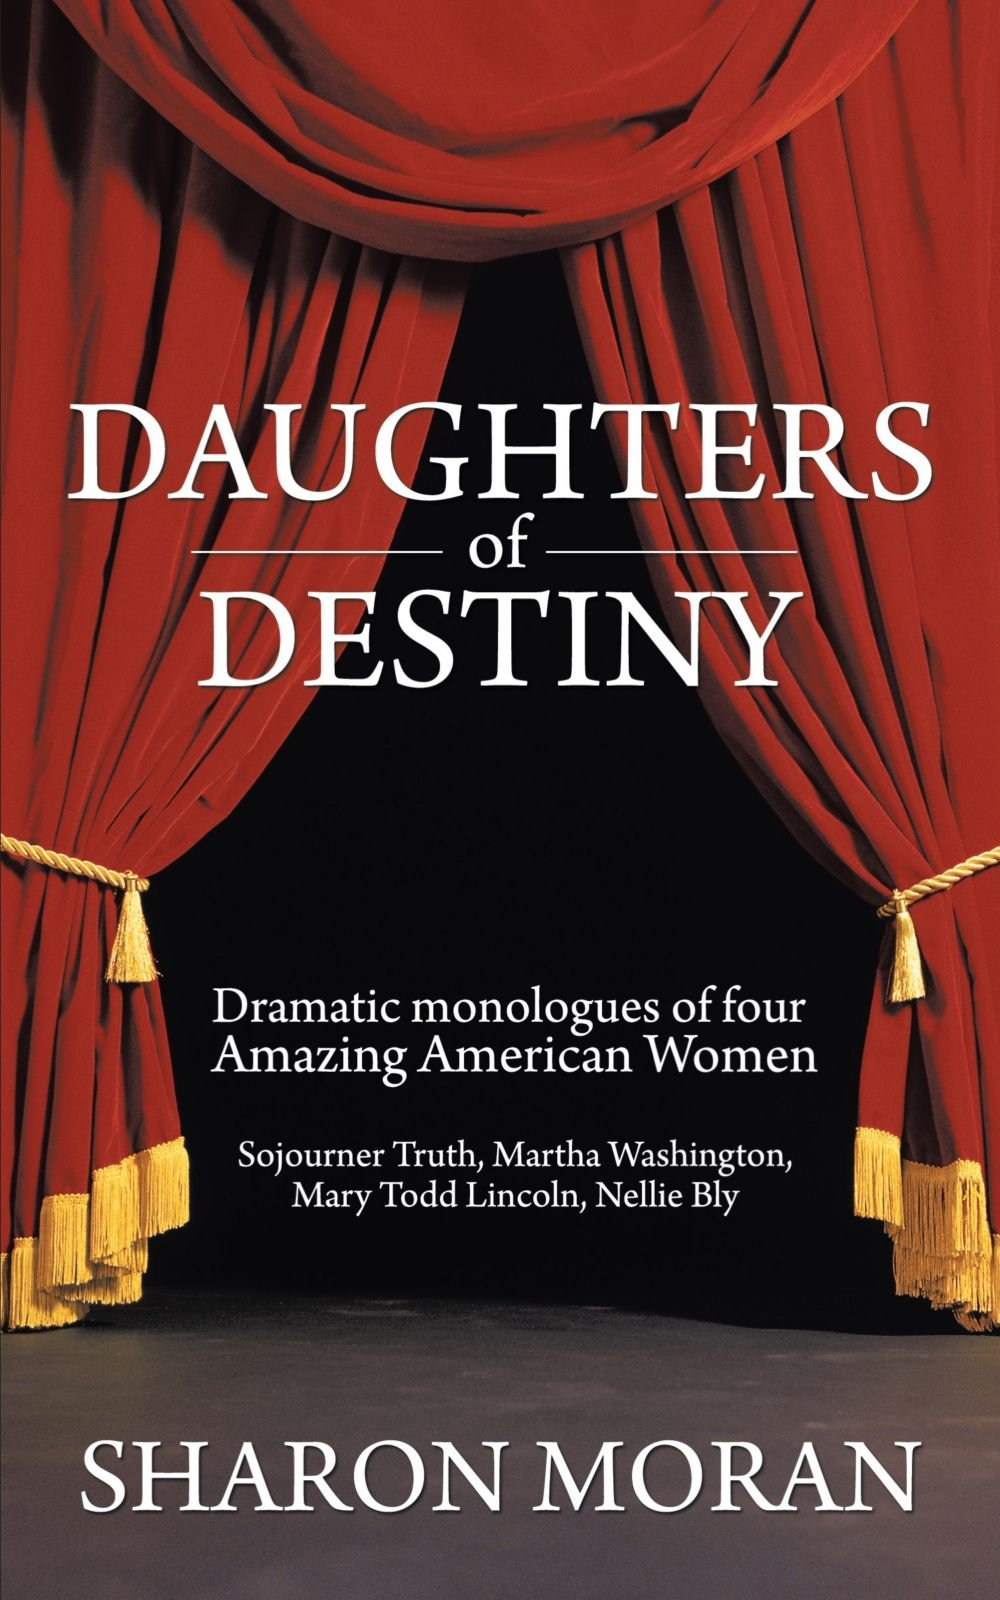 Daughters Of Destiny: Dramatic monologues of four Amazing American Women